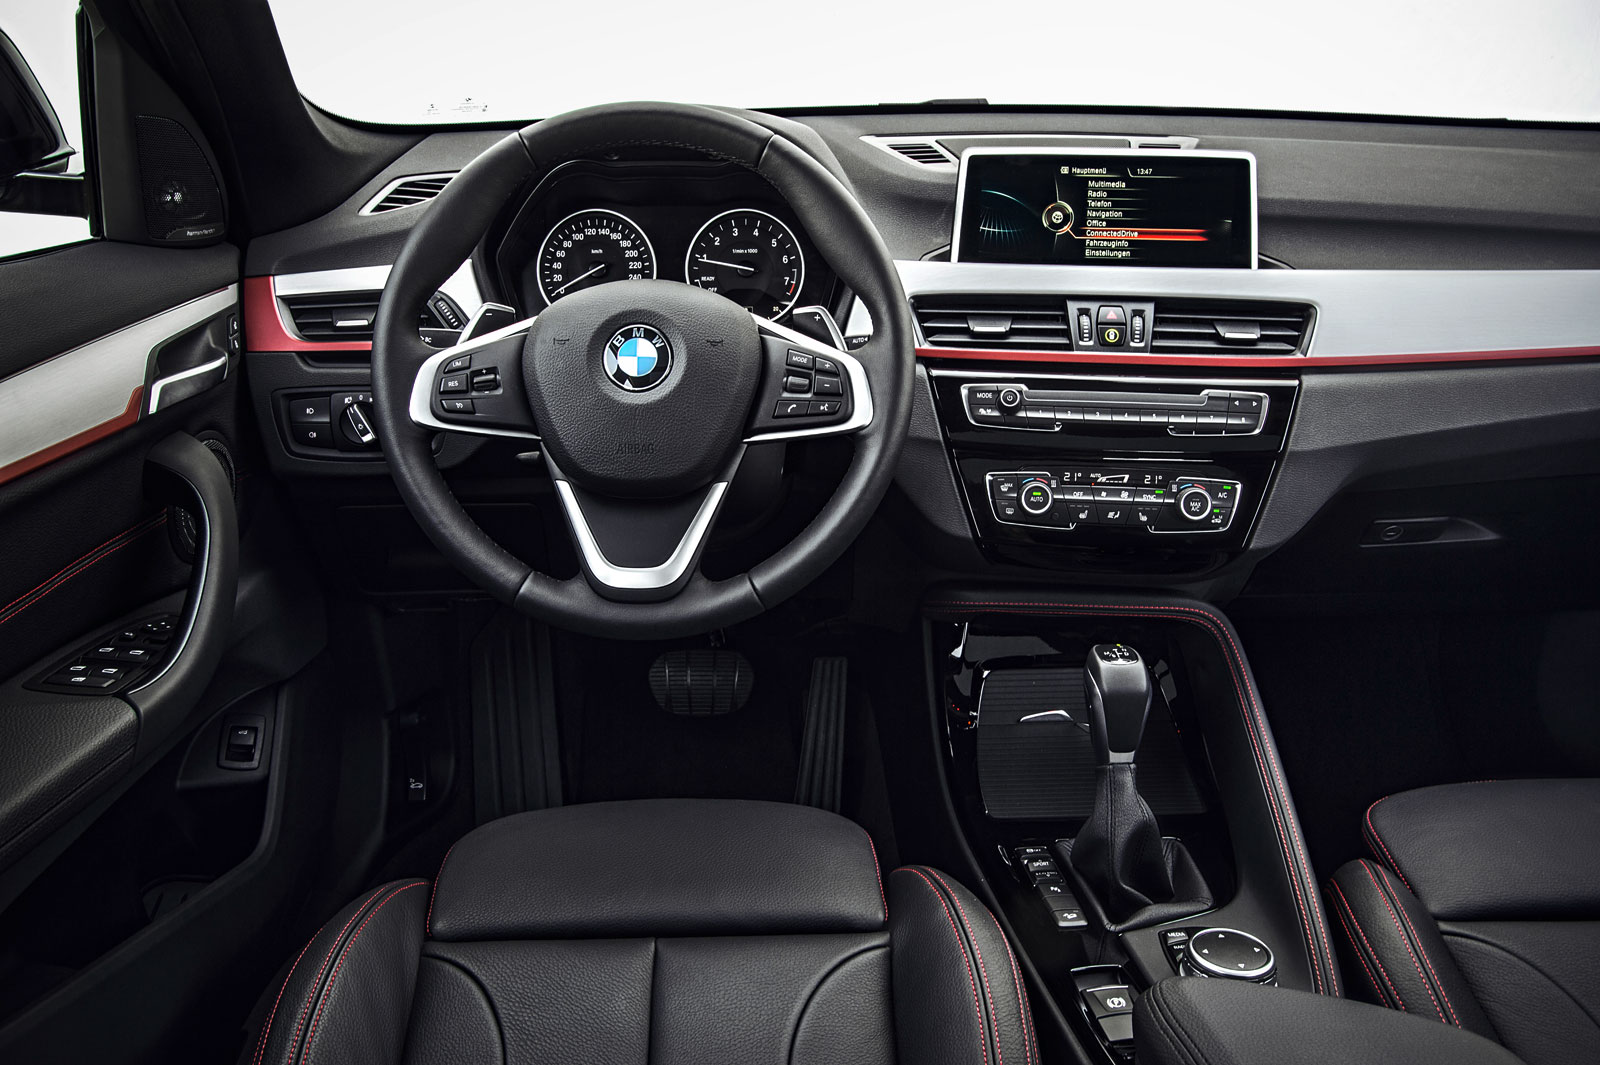 2016 Bmw X1 Interior Car Body Design